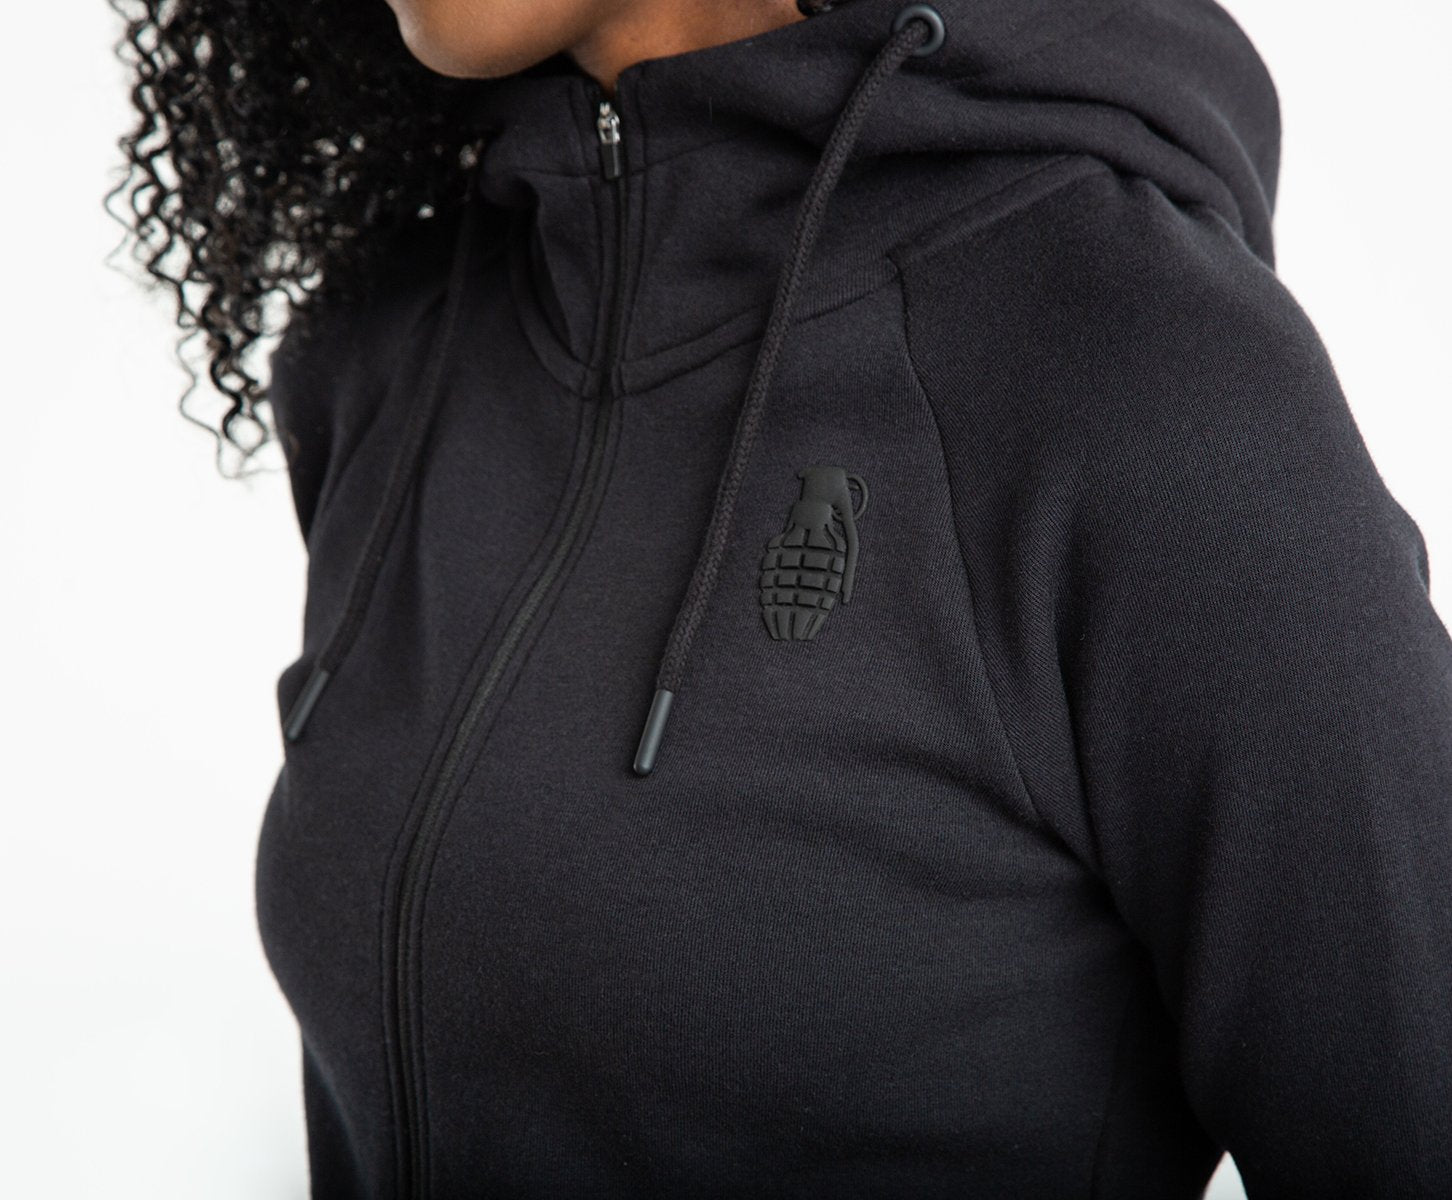 Grenade® Women's Zip Up Hoodie - Grenade.com Exclusive